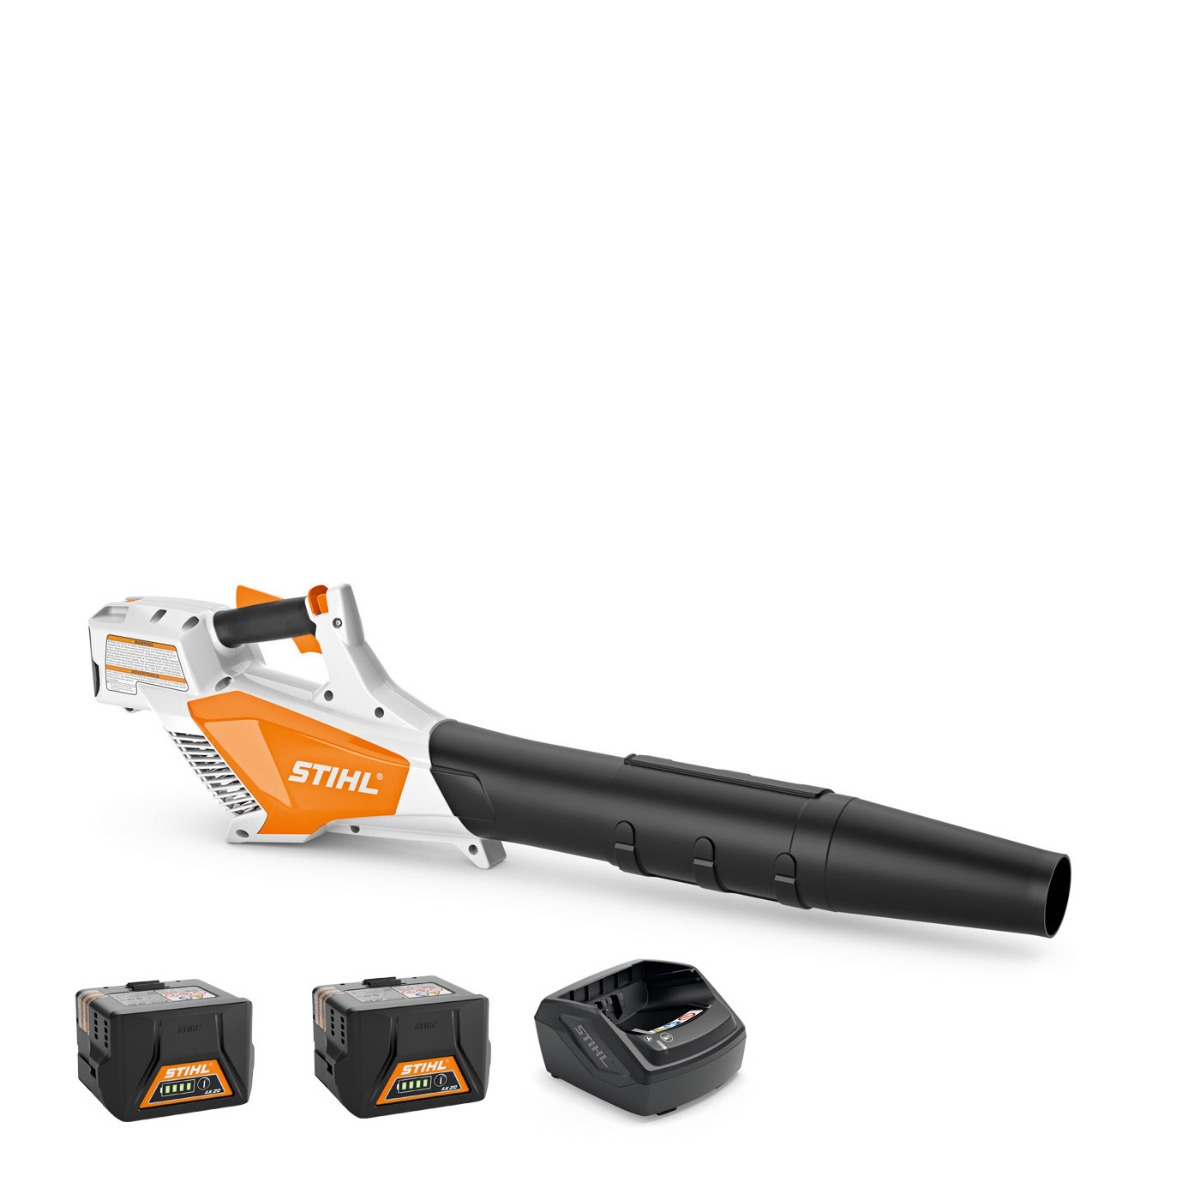 STIHL BGA 57 AK BATTERY BLOWER KIT